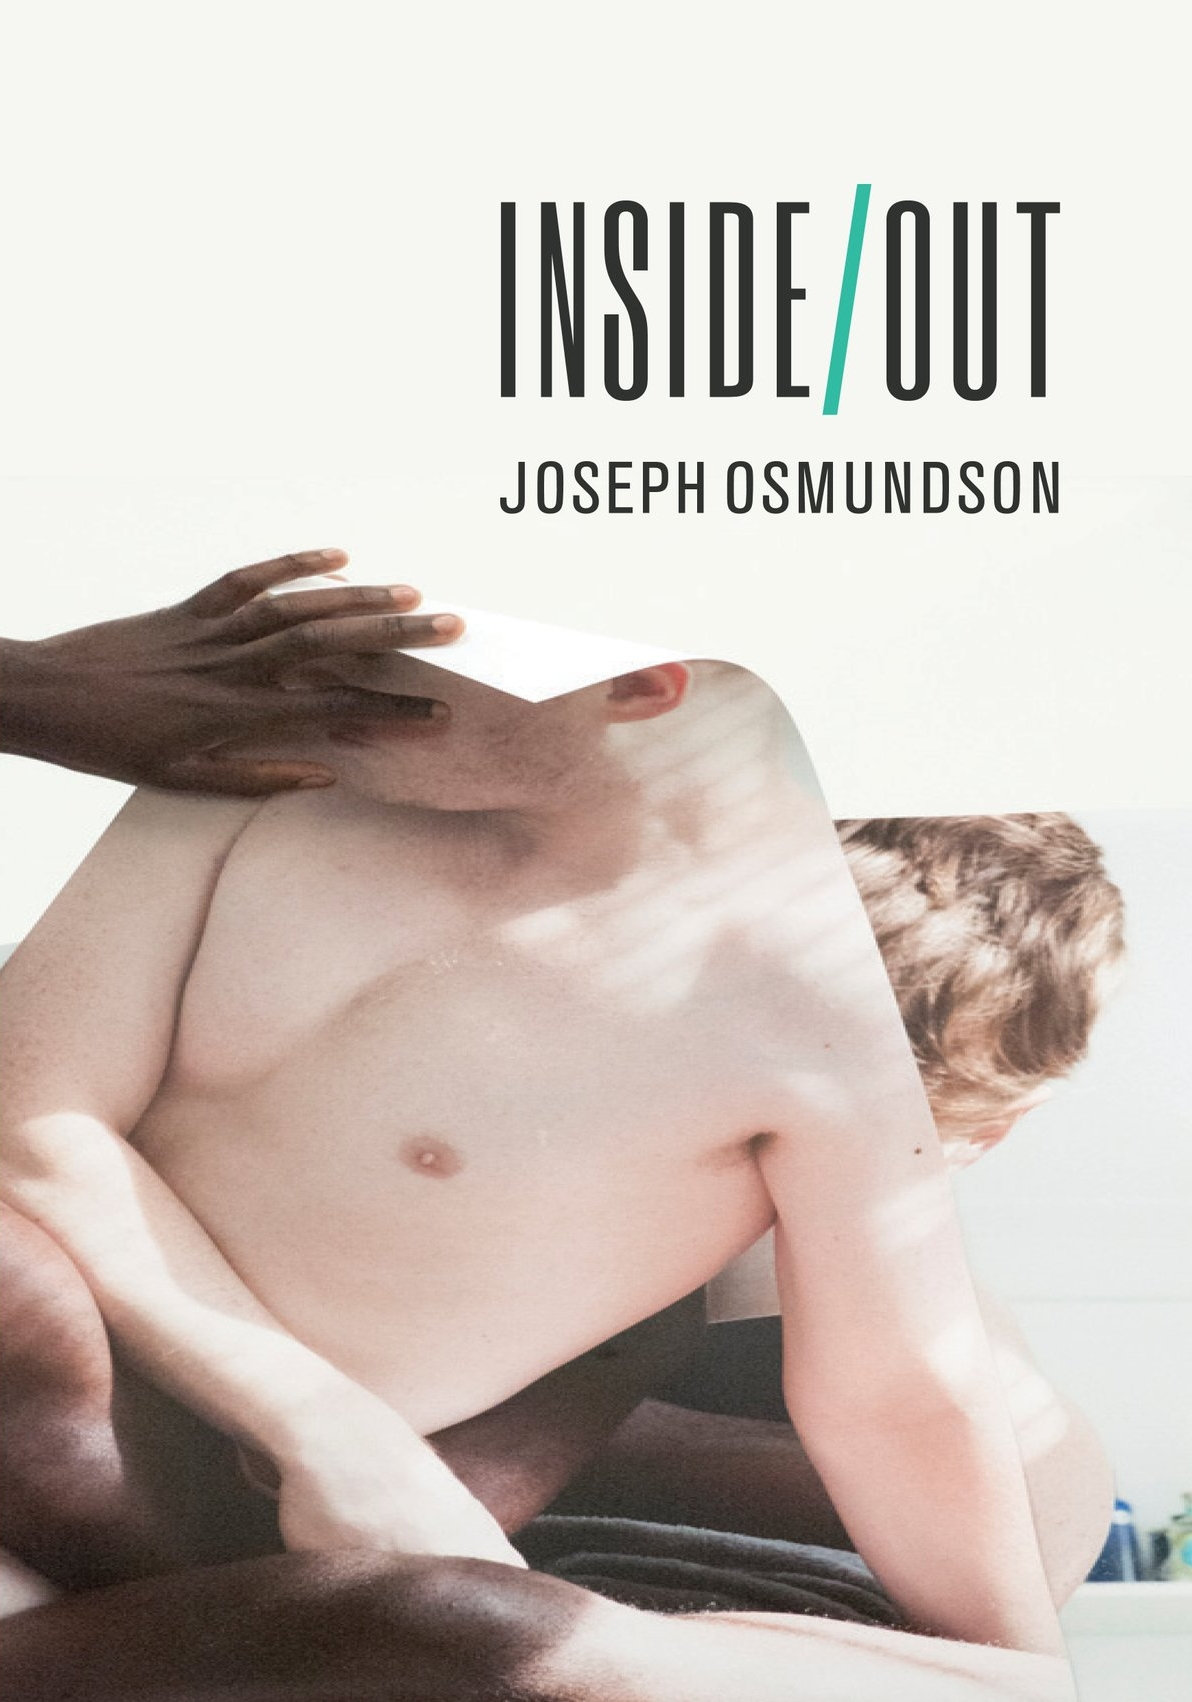 INSIDE/OUT is now available  - http://siblingrivalrypress.bigcartel.com/product/inside-out-by-joseph-osmundson